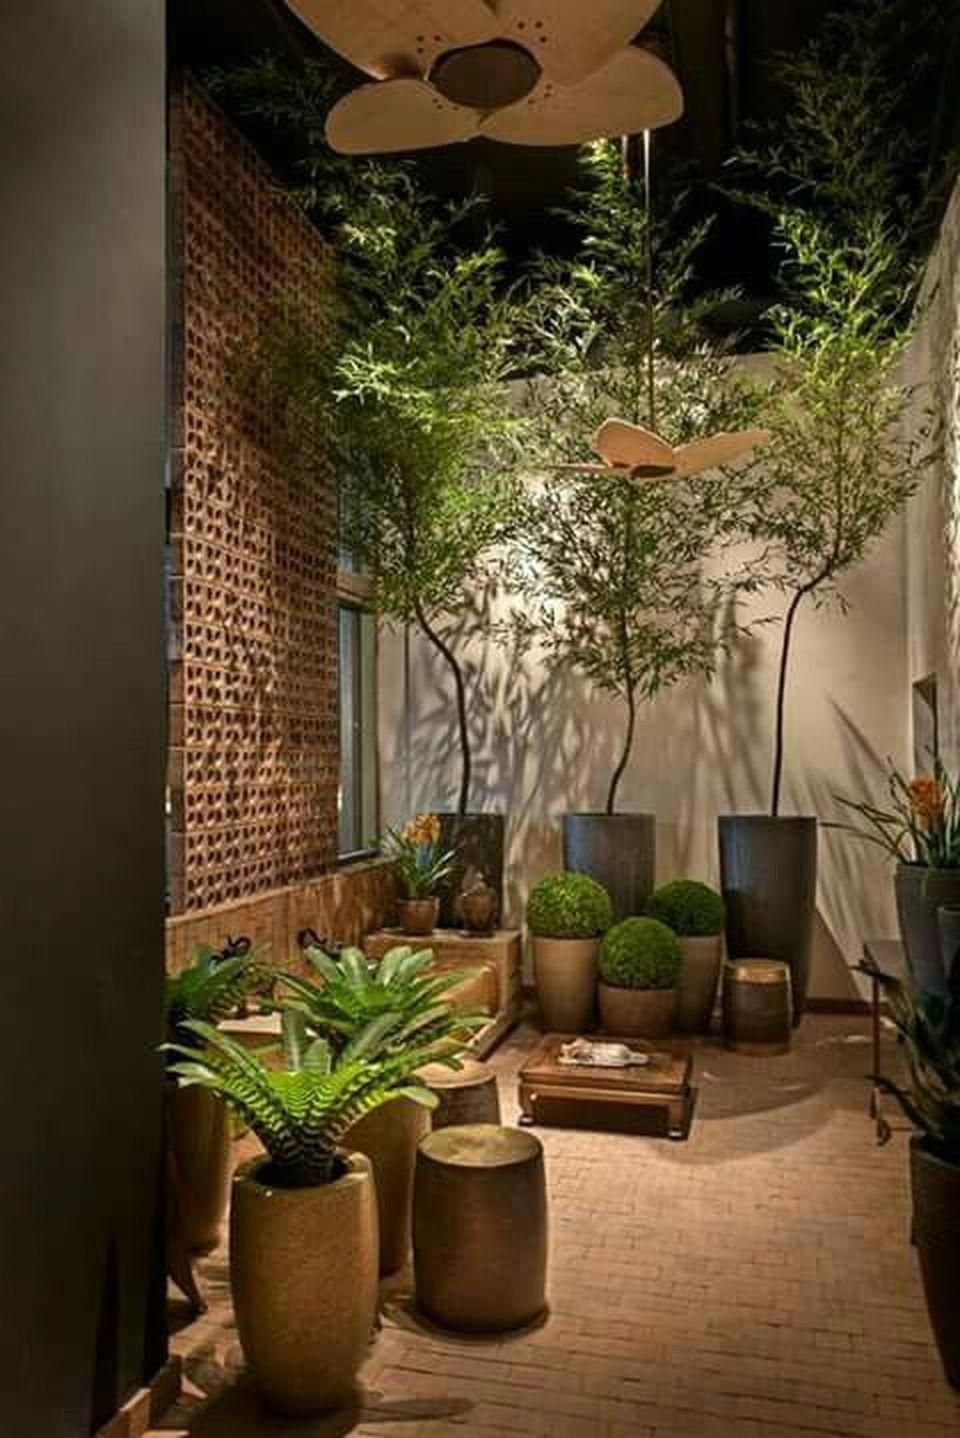 Small courtyard garden with seating area design and layout 67 #backyardlandscaping #smallcourtyardgardens